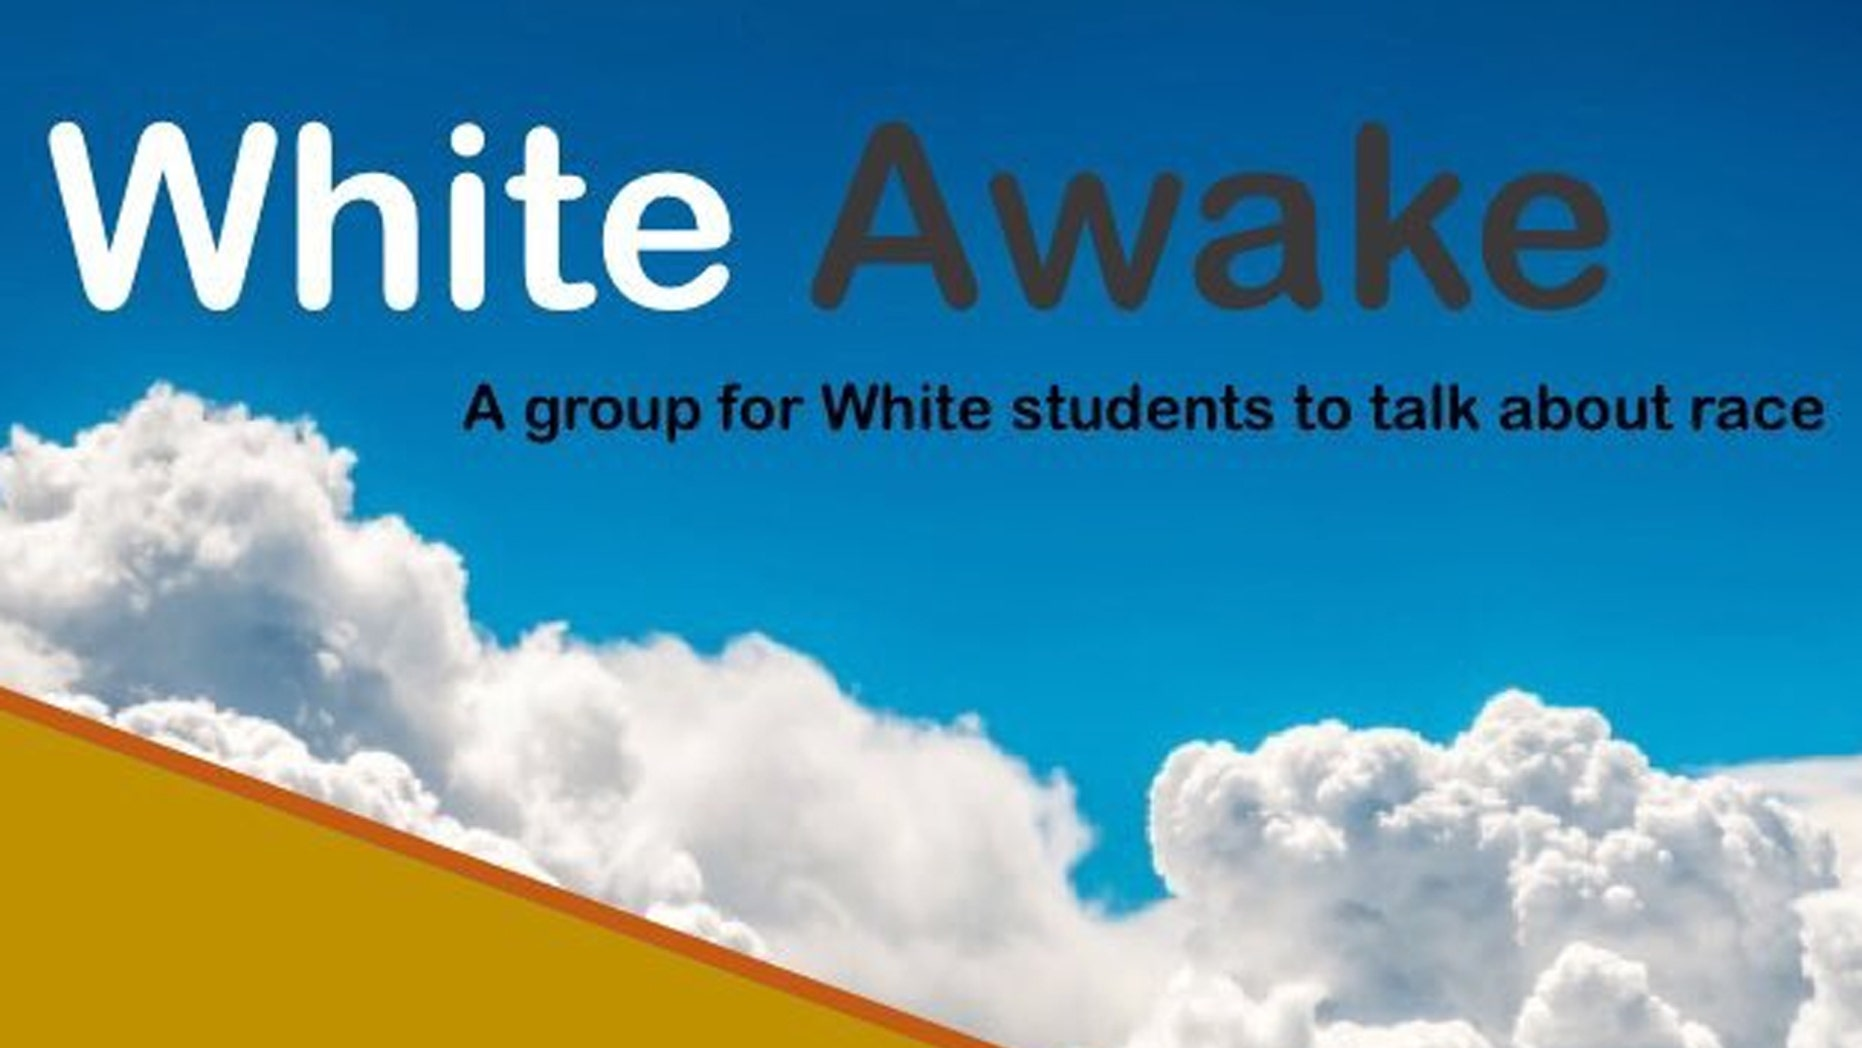 """The University of Maryland's Counseling Center received backlash after they started a group called """"White Awake"""" as a """"safe space for white students"""" to discuss race on campus."""